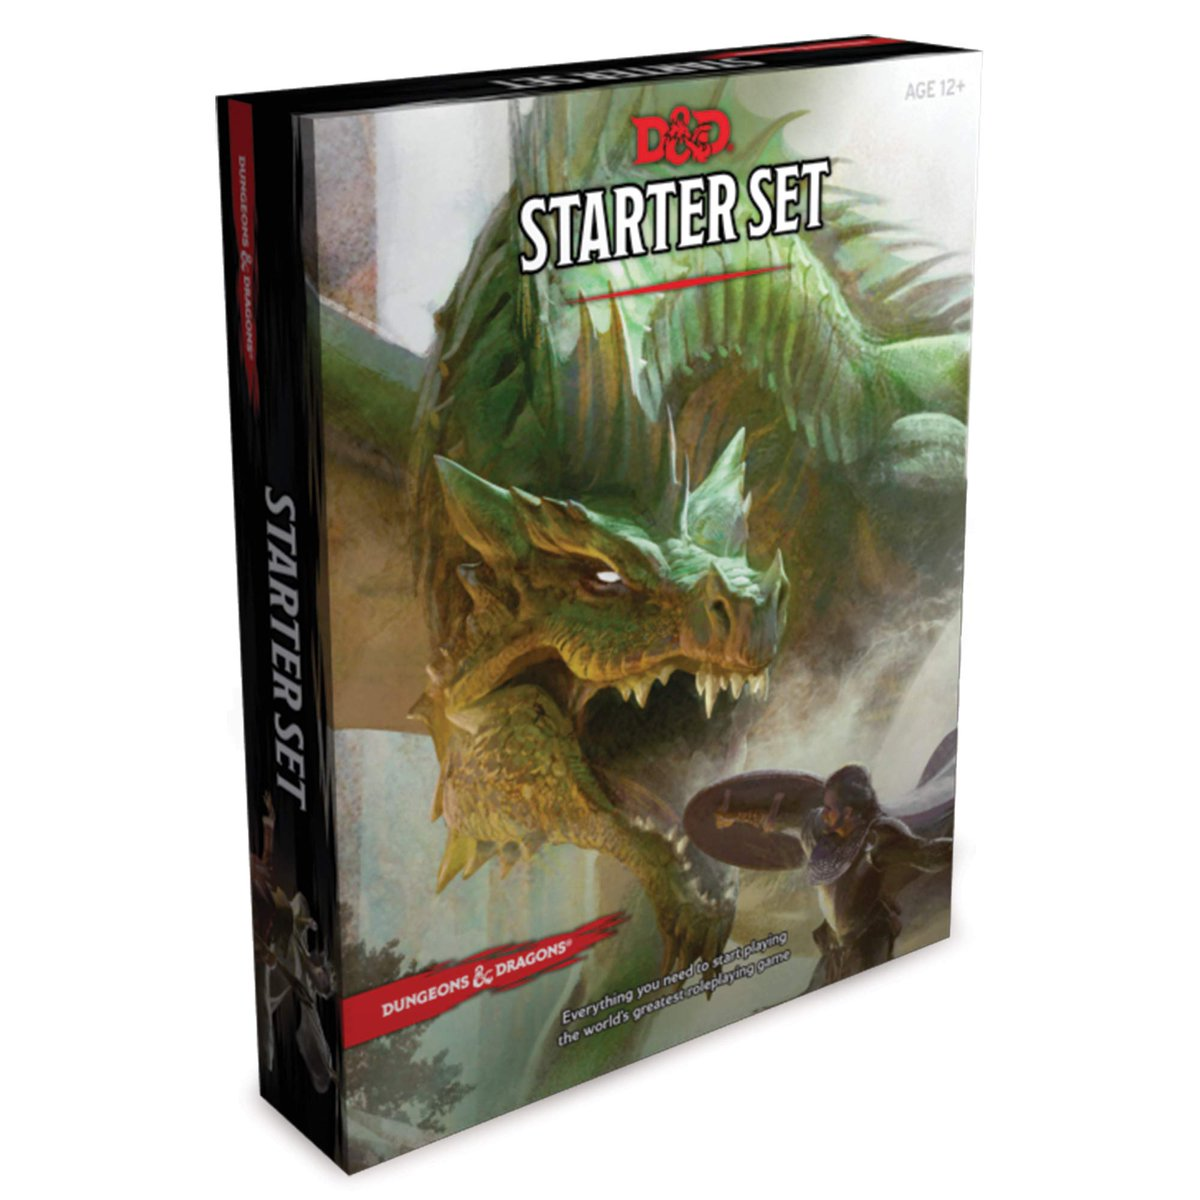 Five years ago today, fifth edition #DungeonsAndDragons' Starter Set was released! Now there are so many ways to get started rolling dice and playing #DnD.   How were you introduced to fifth edition?   #5YearsOf5e